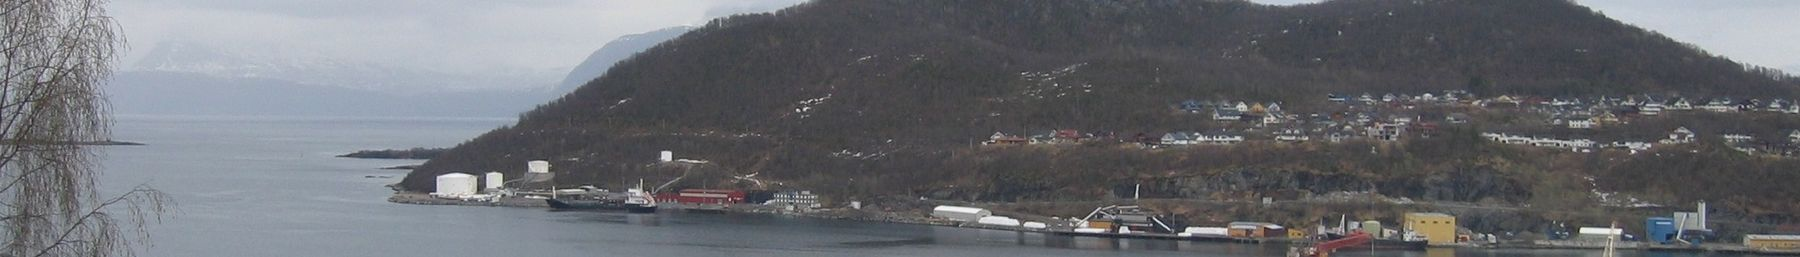 WV banner Harstad View towards east.jpg